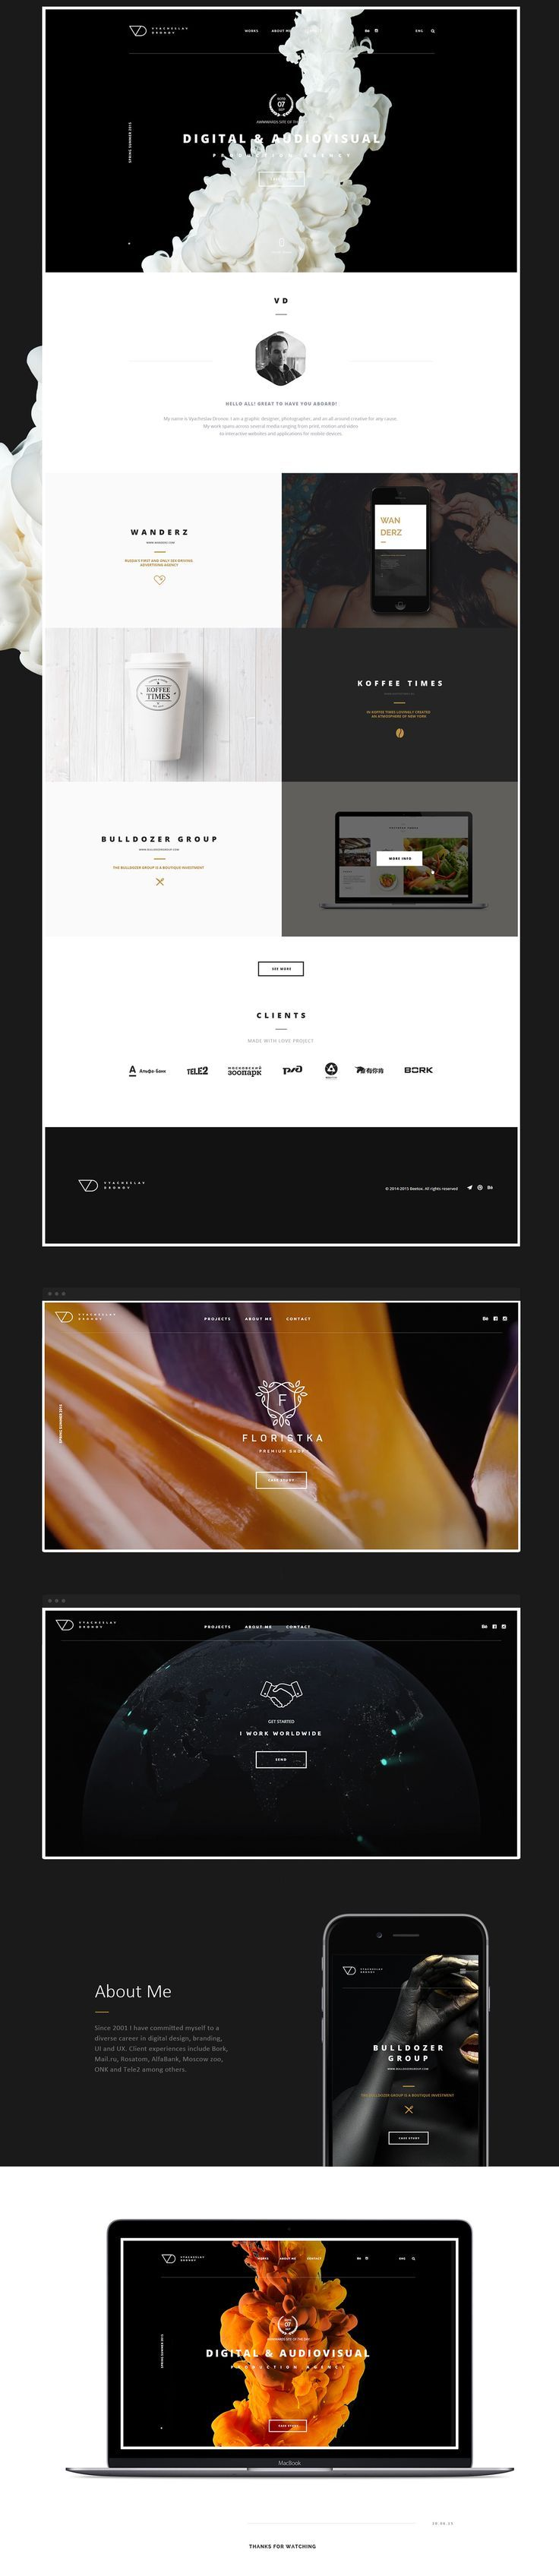 Website Design Ideas web design ideas 25 Best Ideas About Website Designs On Pinterest Web Design Website Layout And Creative Web Design